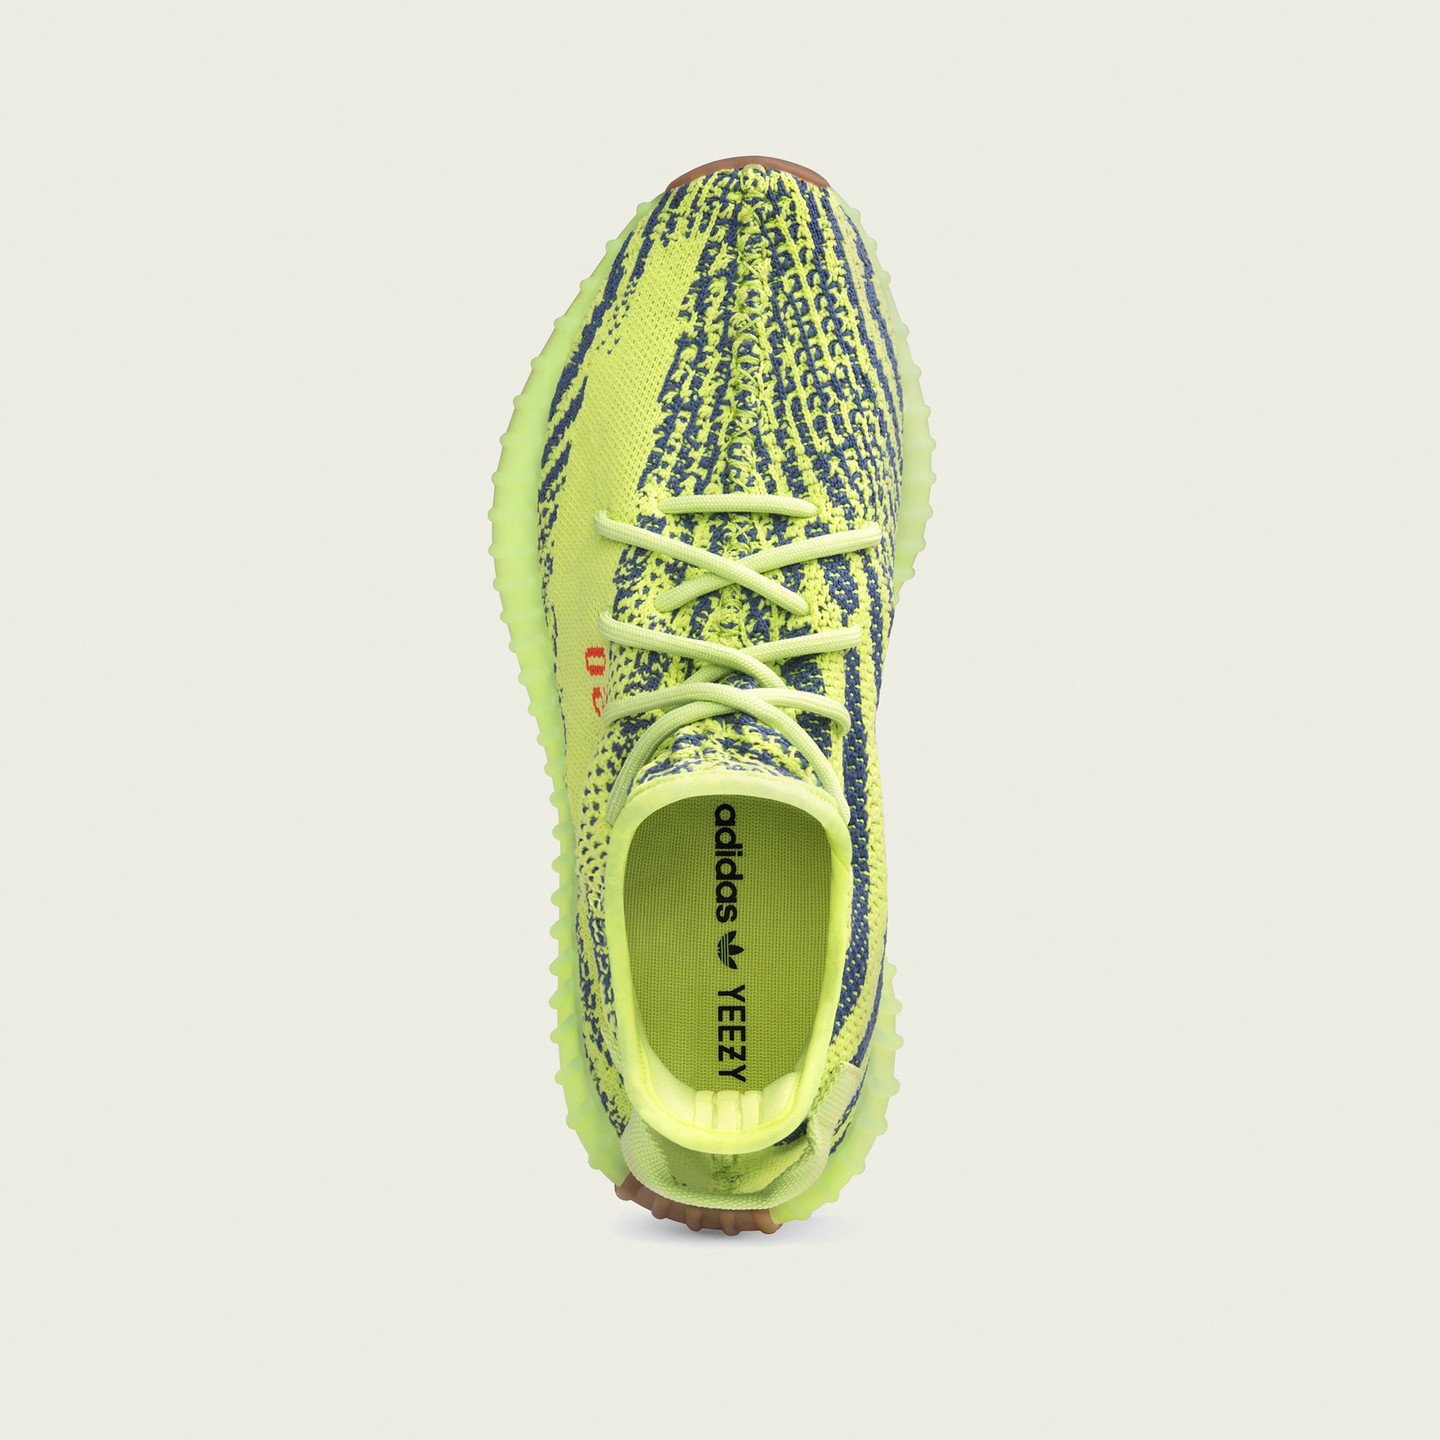 Adidas Yeezy Boost 350 V2 'Semi Frozen Yellow' Sefrye / Rawste / Red B37572